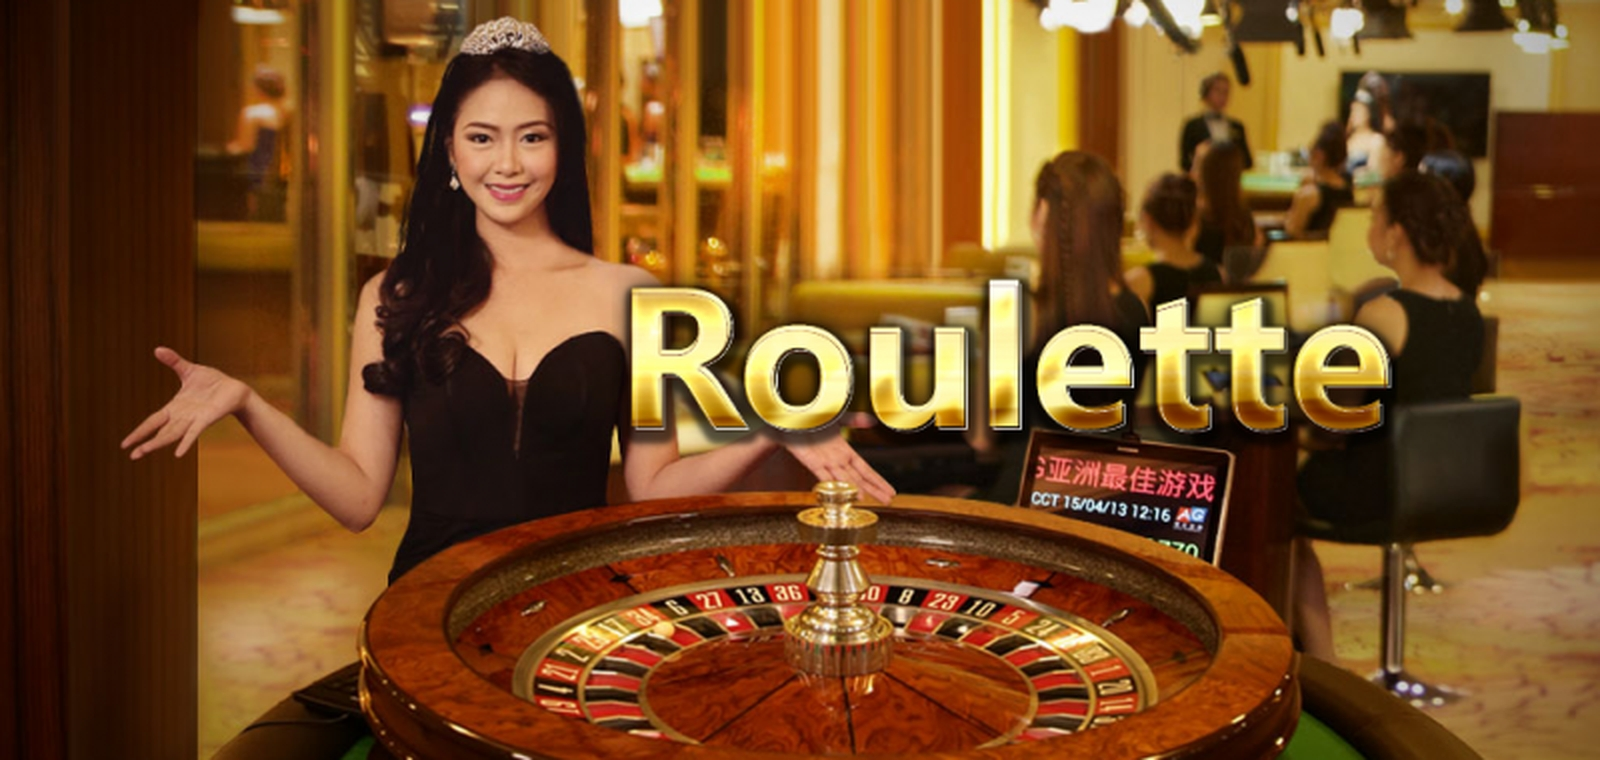 The Netherland Roulette Online Slot Demo Game by Evolution Gaming